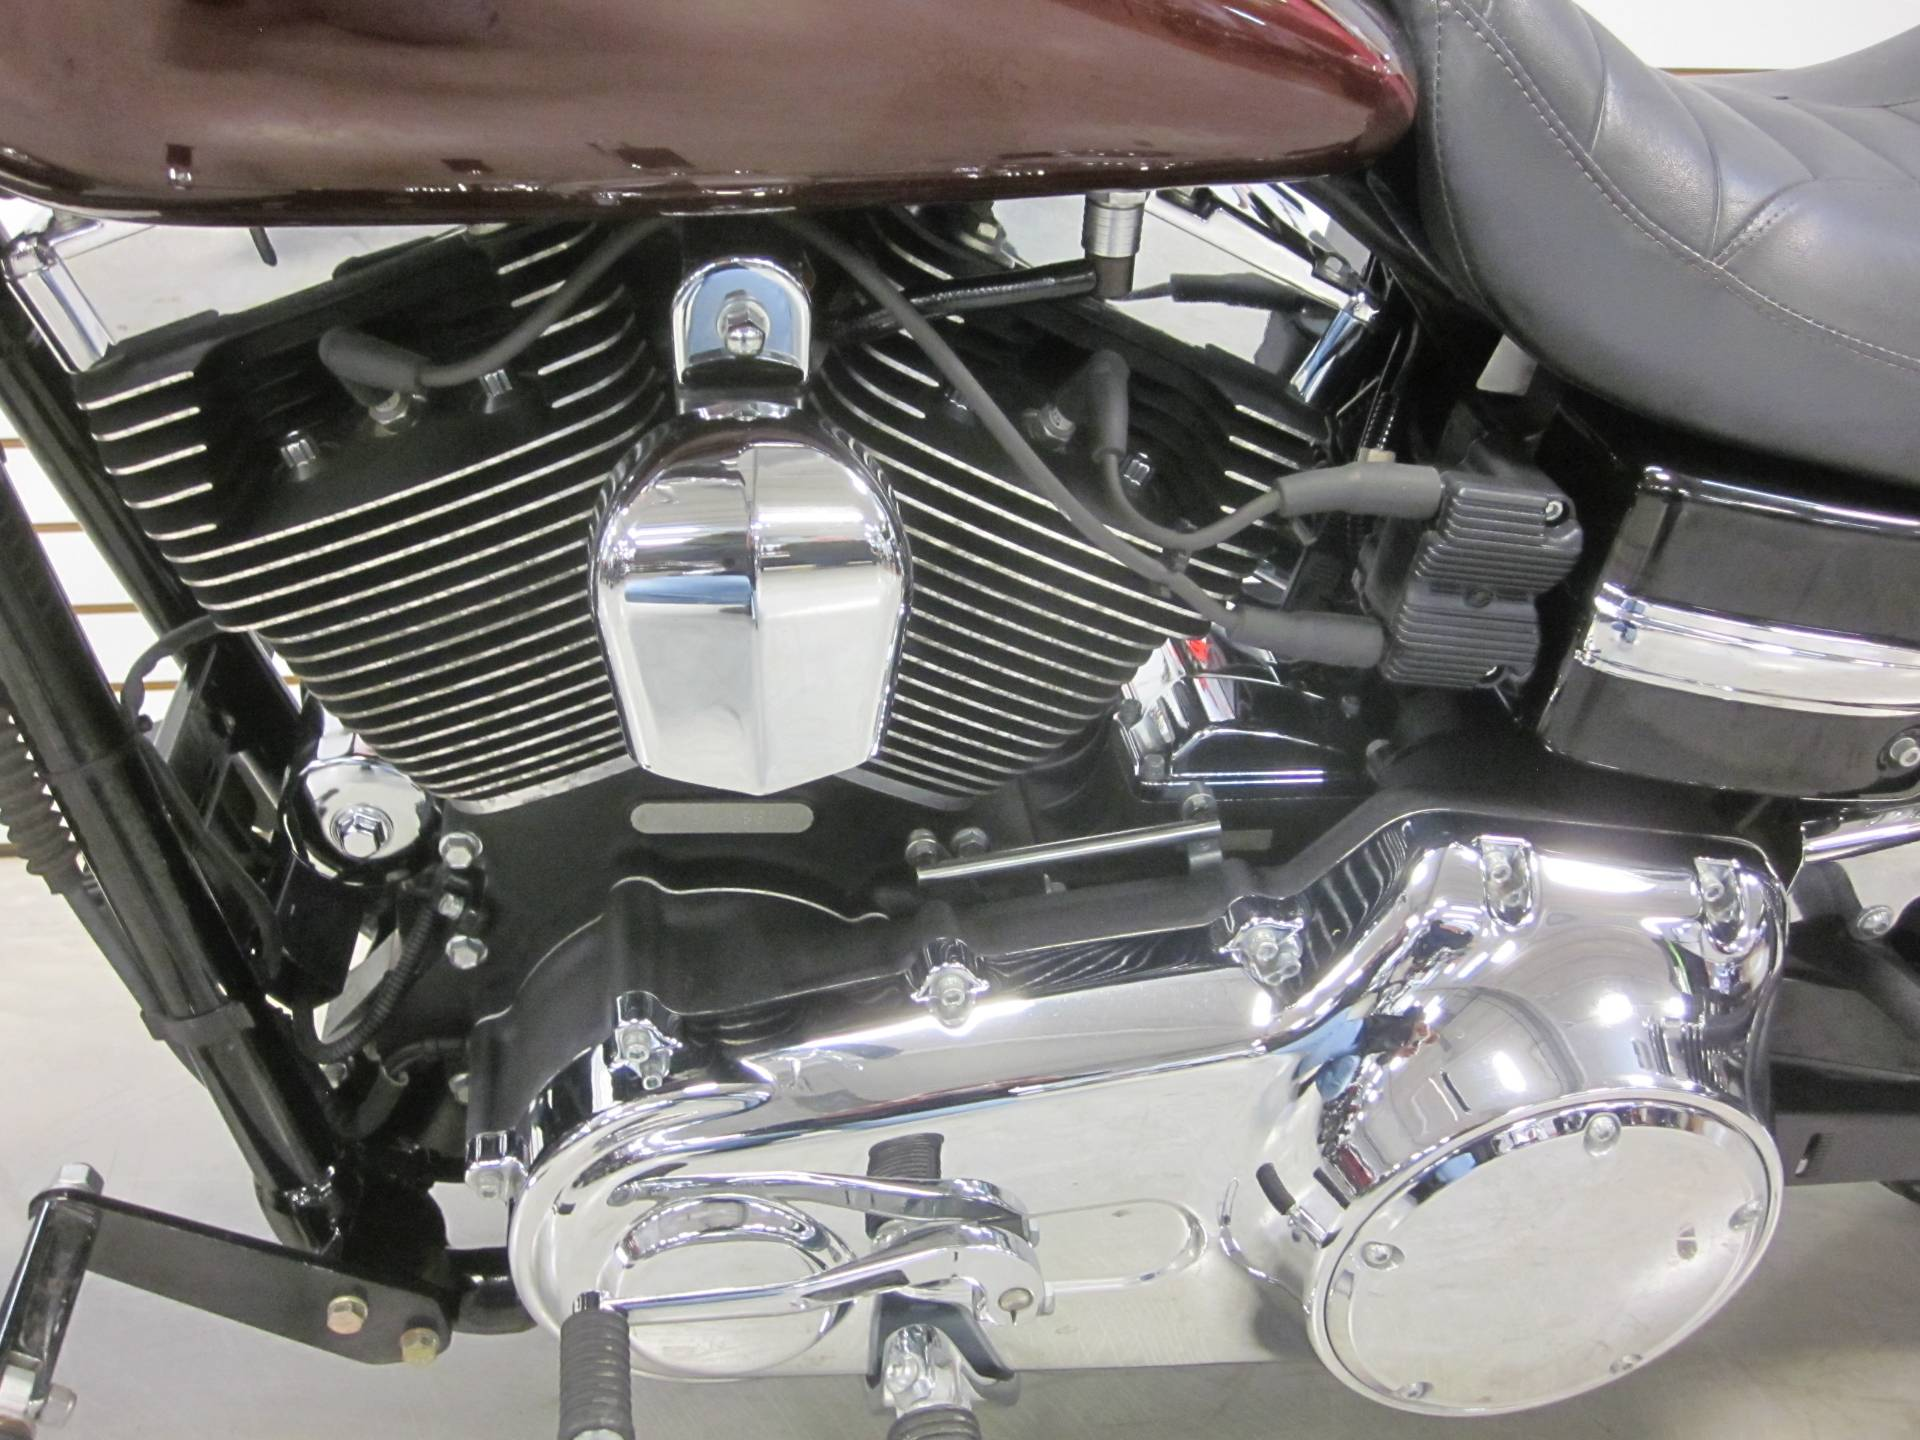 2011 Harley Davidson Super Glide in Lima, Ohio - Photo 9